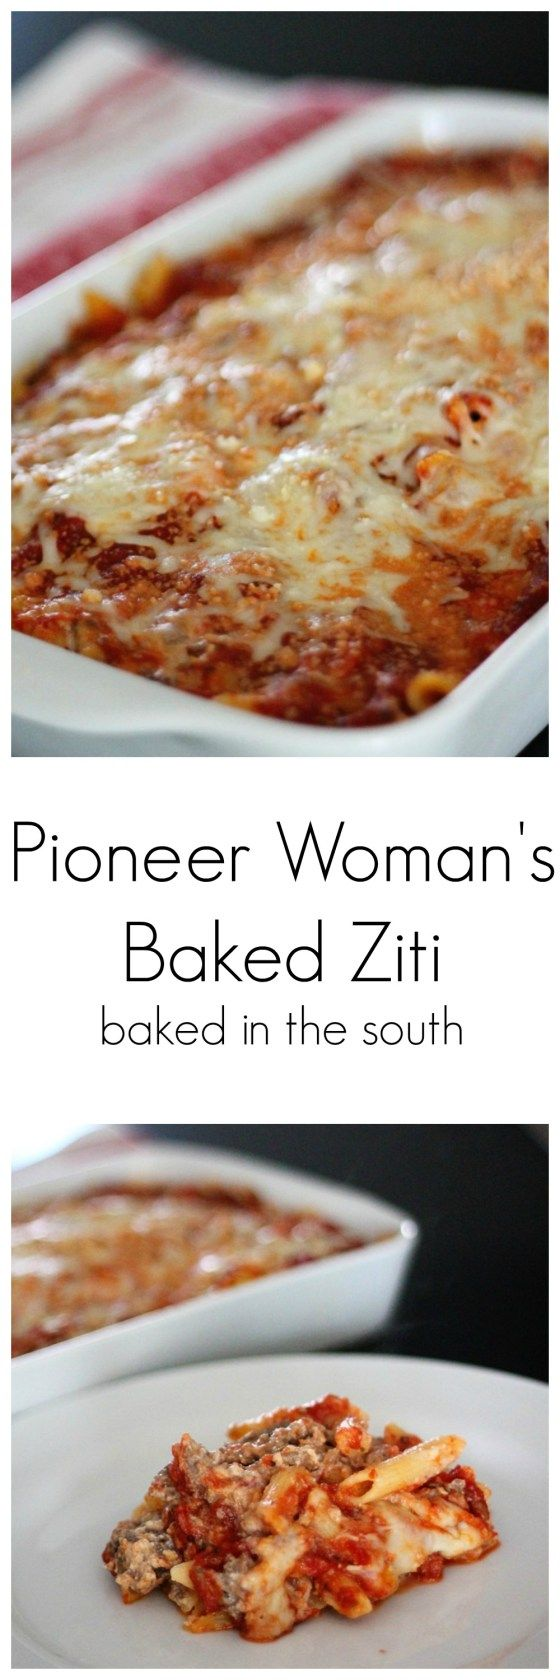 What are some of Pioneer Woman's most popular recipes?